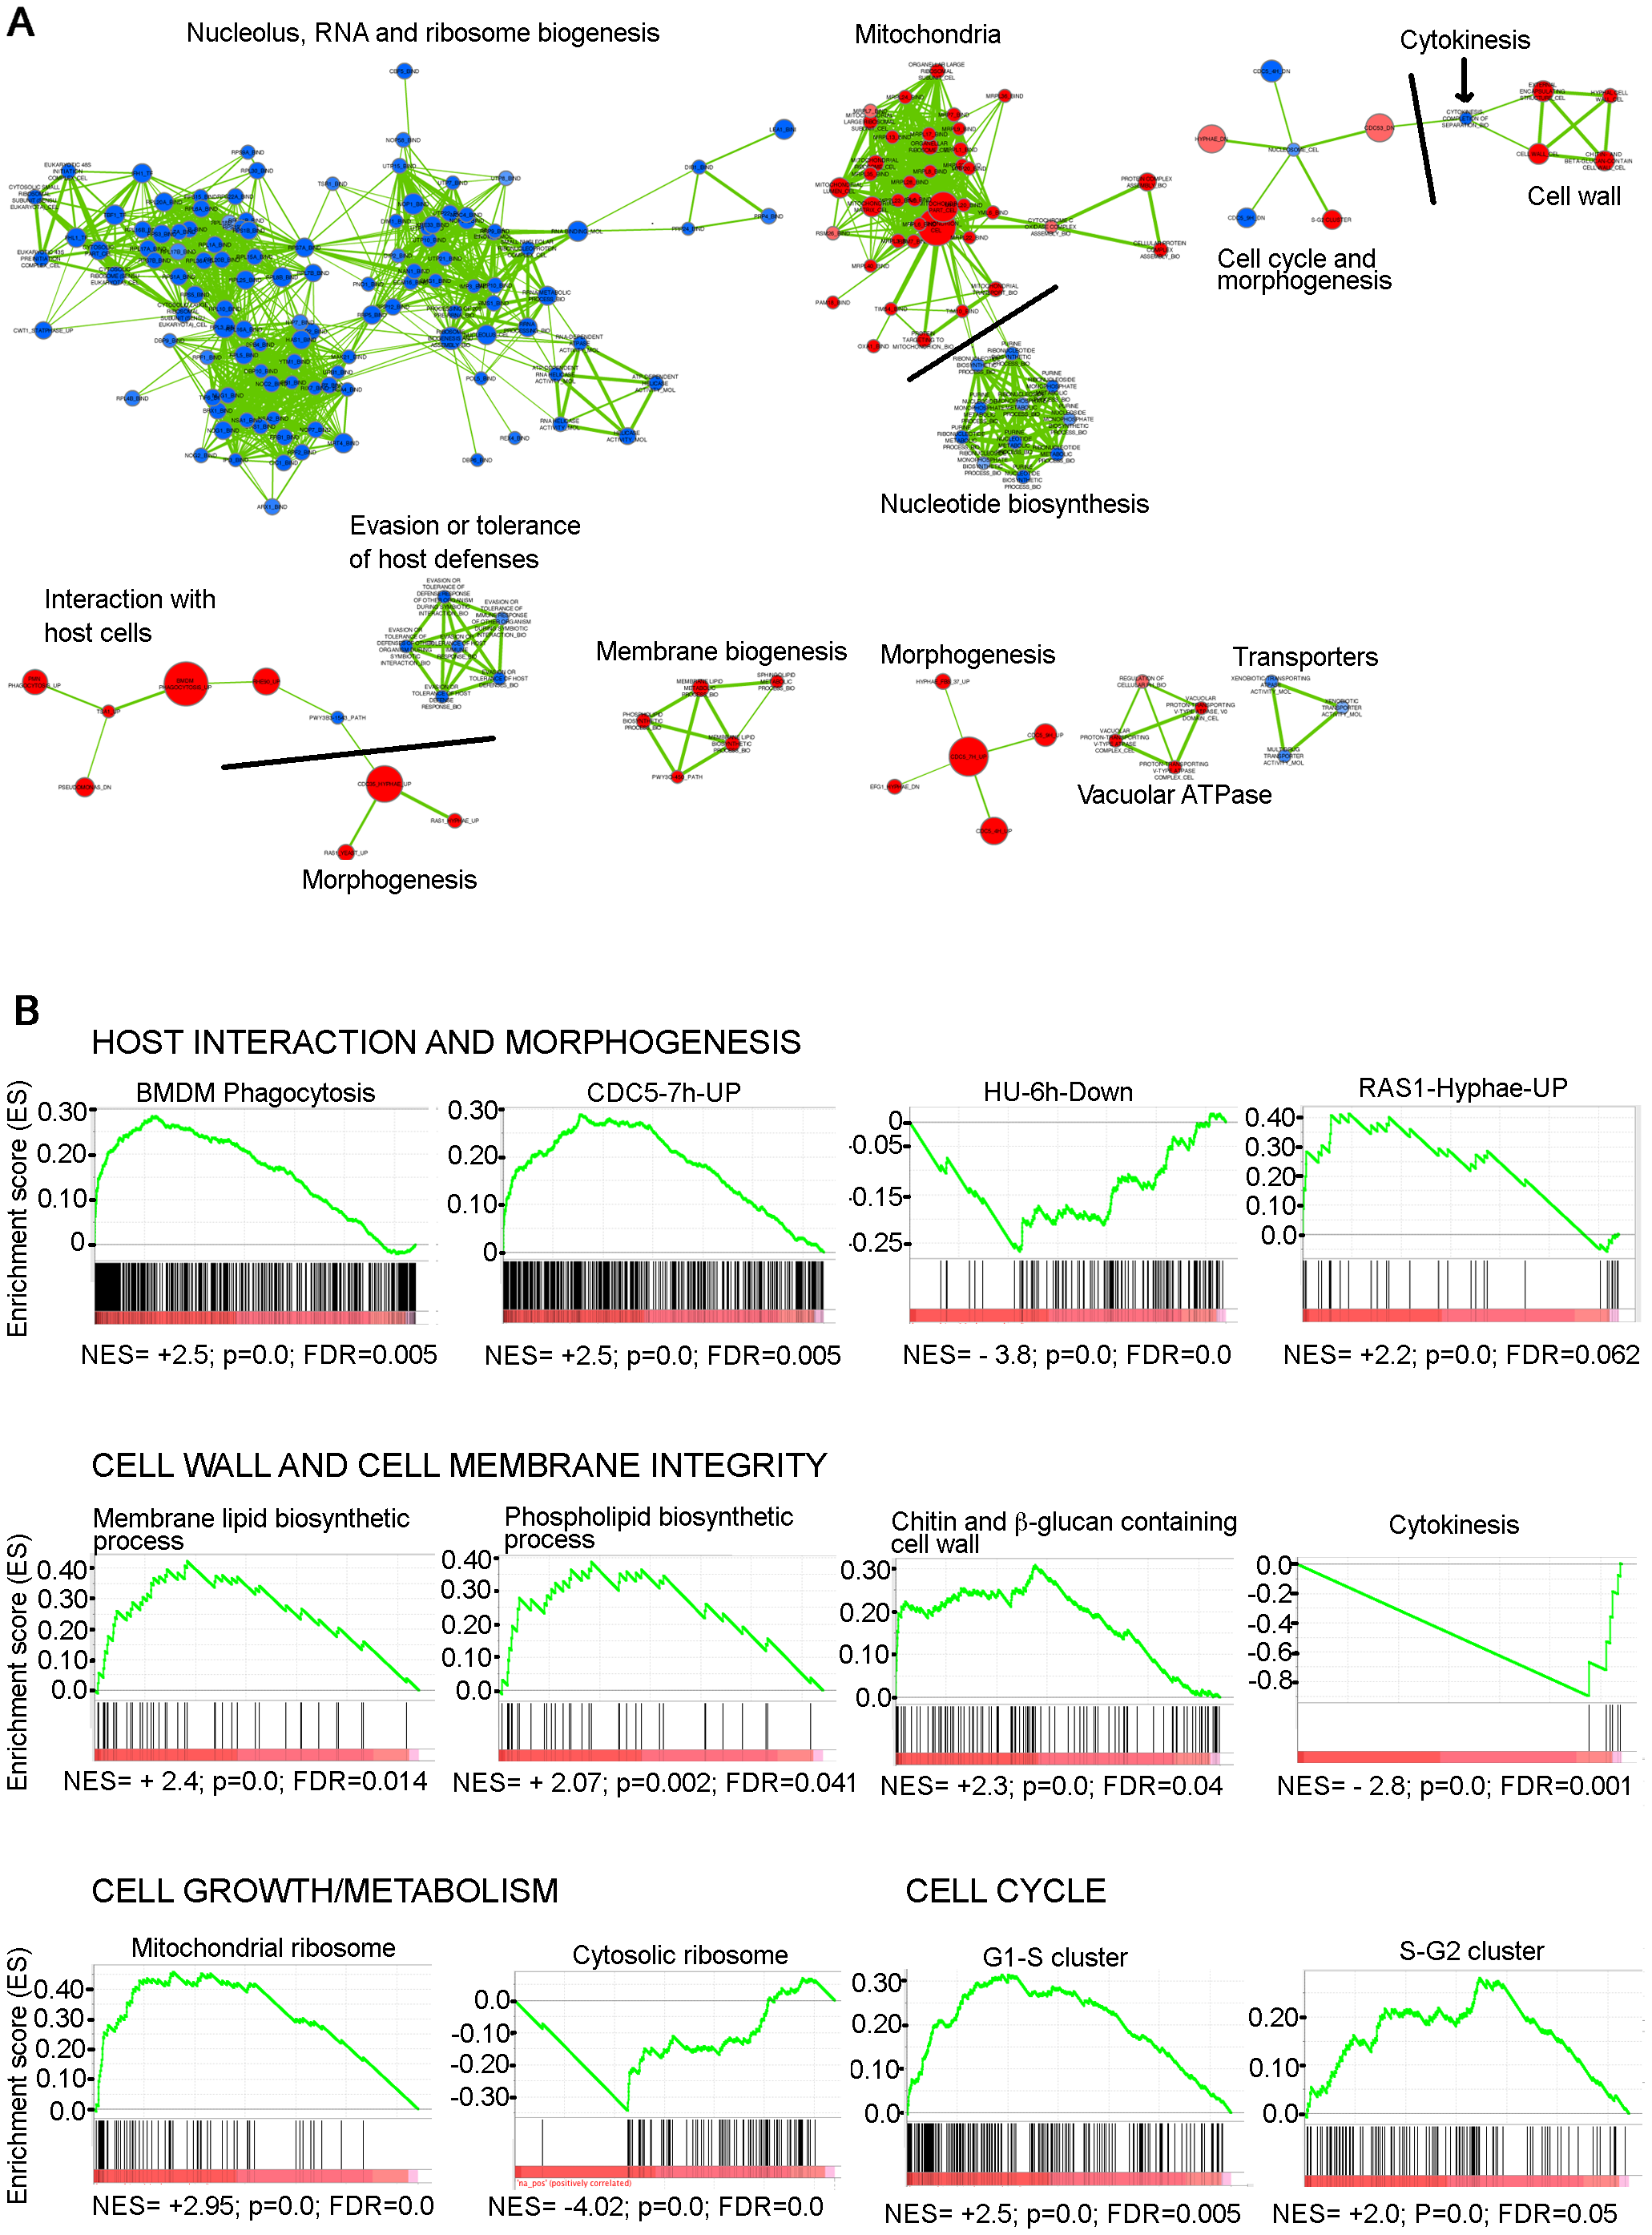 GSEA analysis of the genes differentially expressed in the absence of Med31 in <i>C. albicans</i>.